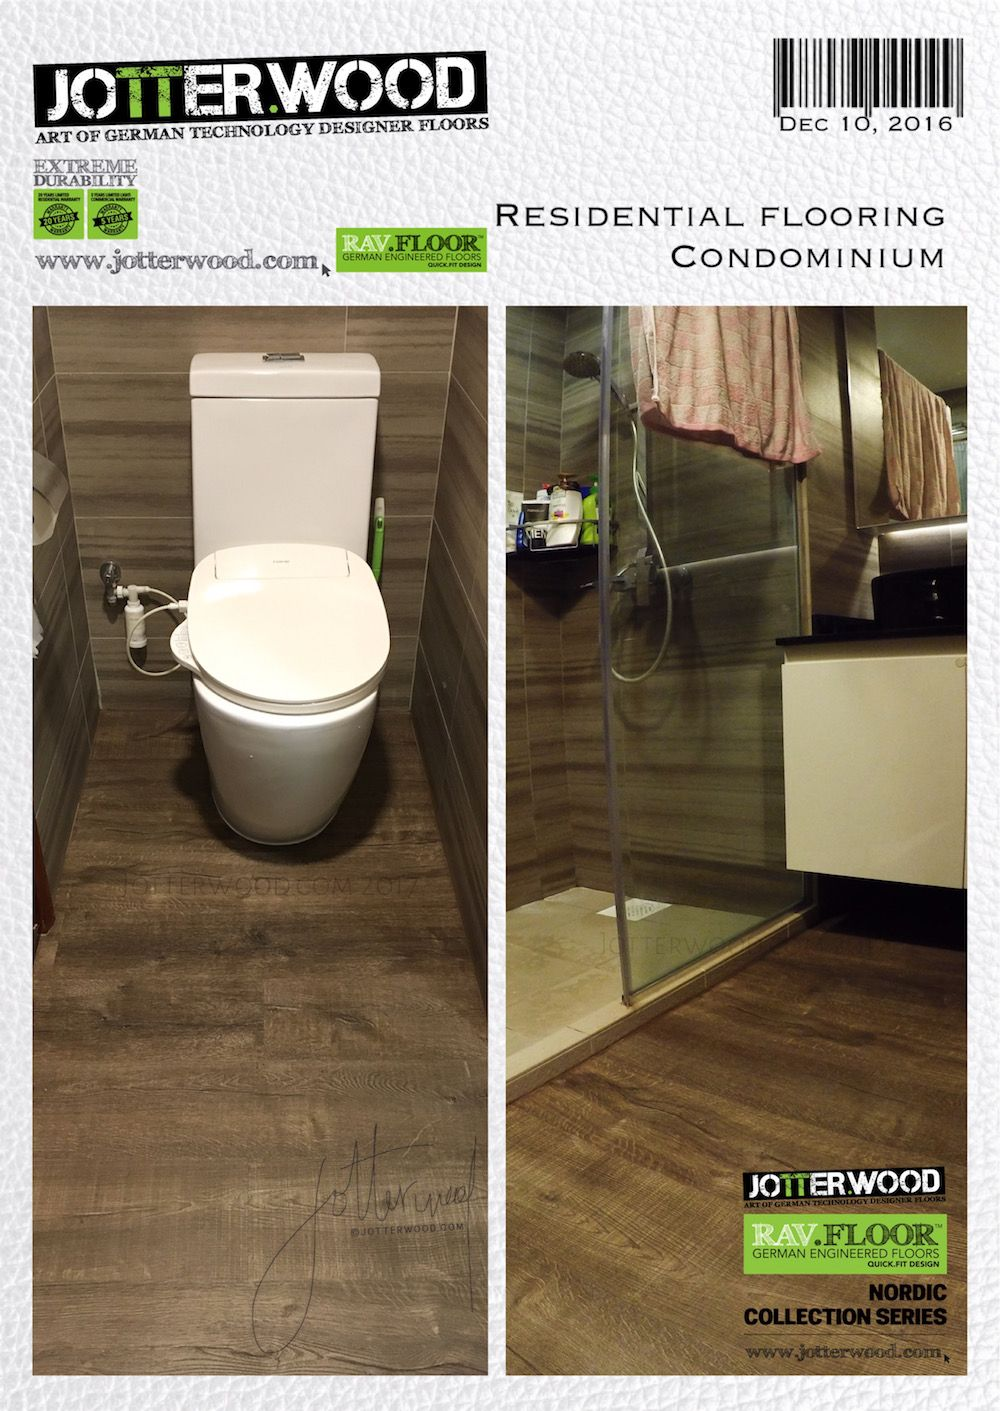 Hotel Like Toilet Flooring Jotterwood Vinyl Flooring Singapore Laminate Flooring Singapore Engin Vinyl Flooring Engineered Wood Floors Residential Flooring